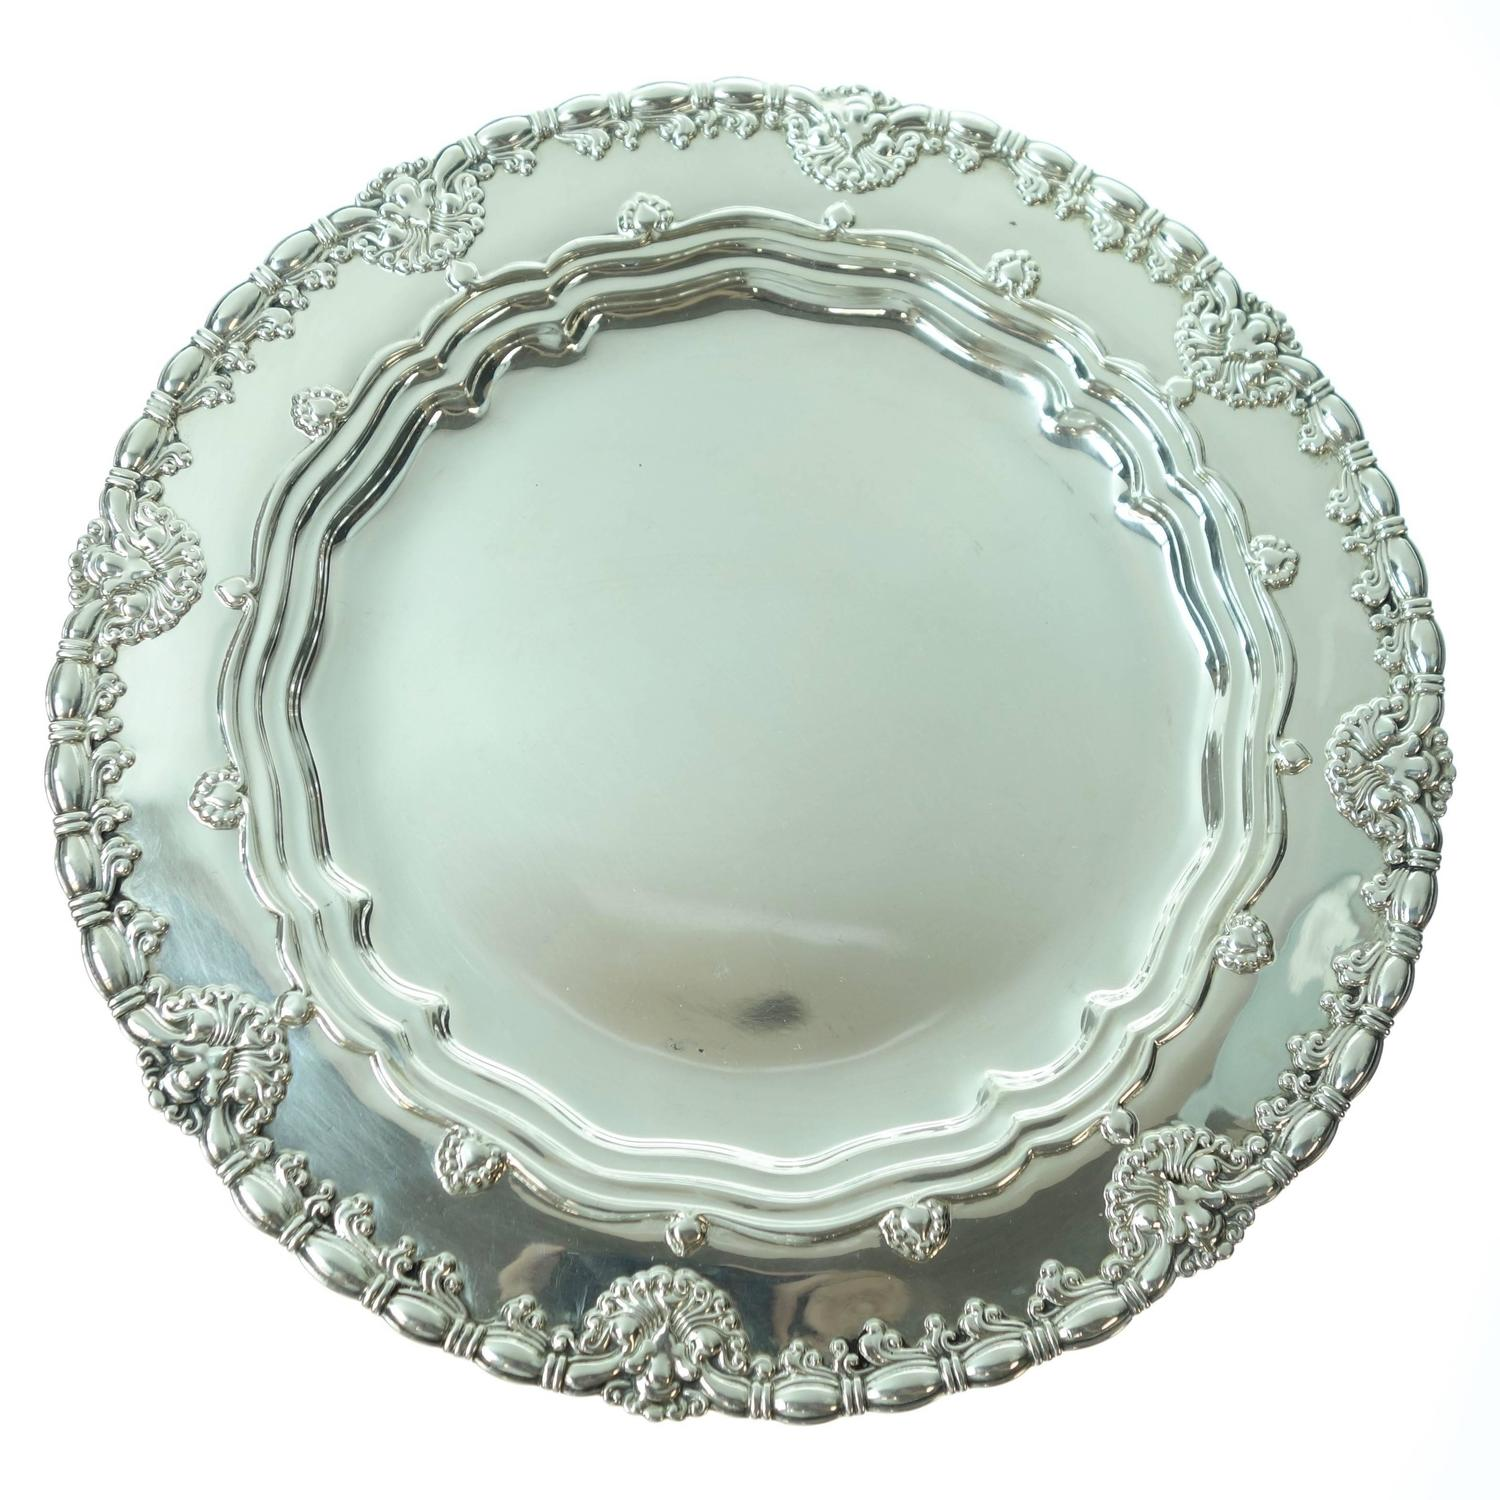 Sterling Silver Plates Set of Ten Circa 1905 at 1stdibs  sc 1 st  1stDibs & Tiffany and Co. Sterling Silver Plates Set of Ten Circa 1905 at 1stdibs